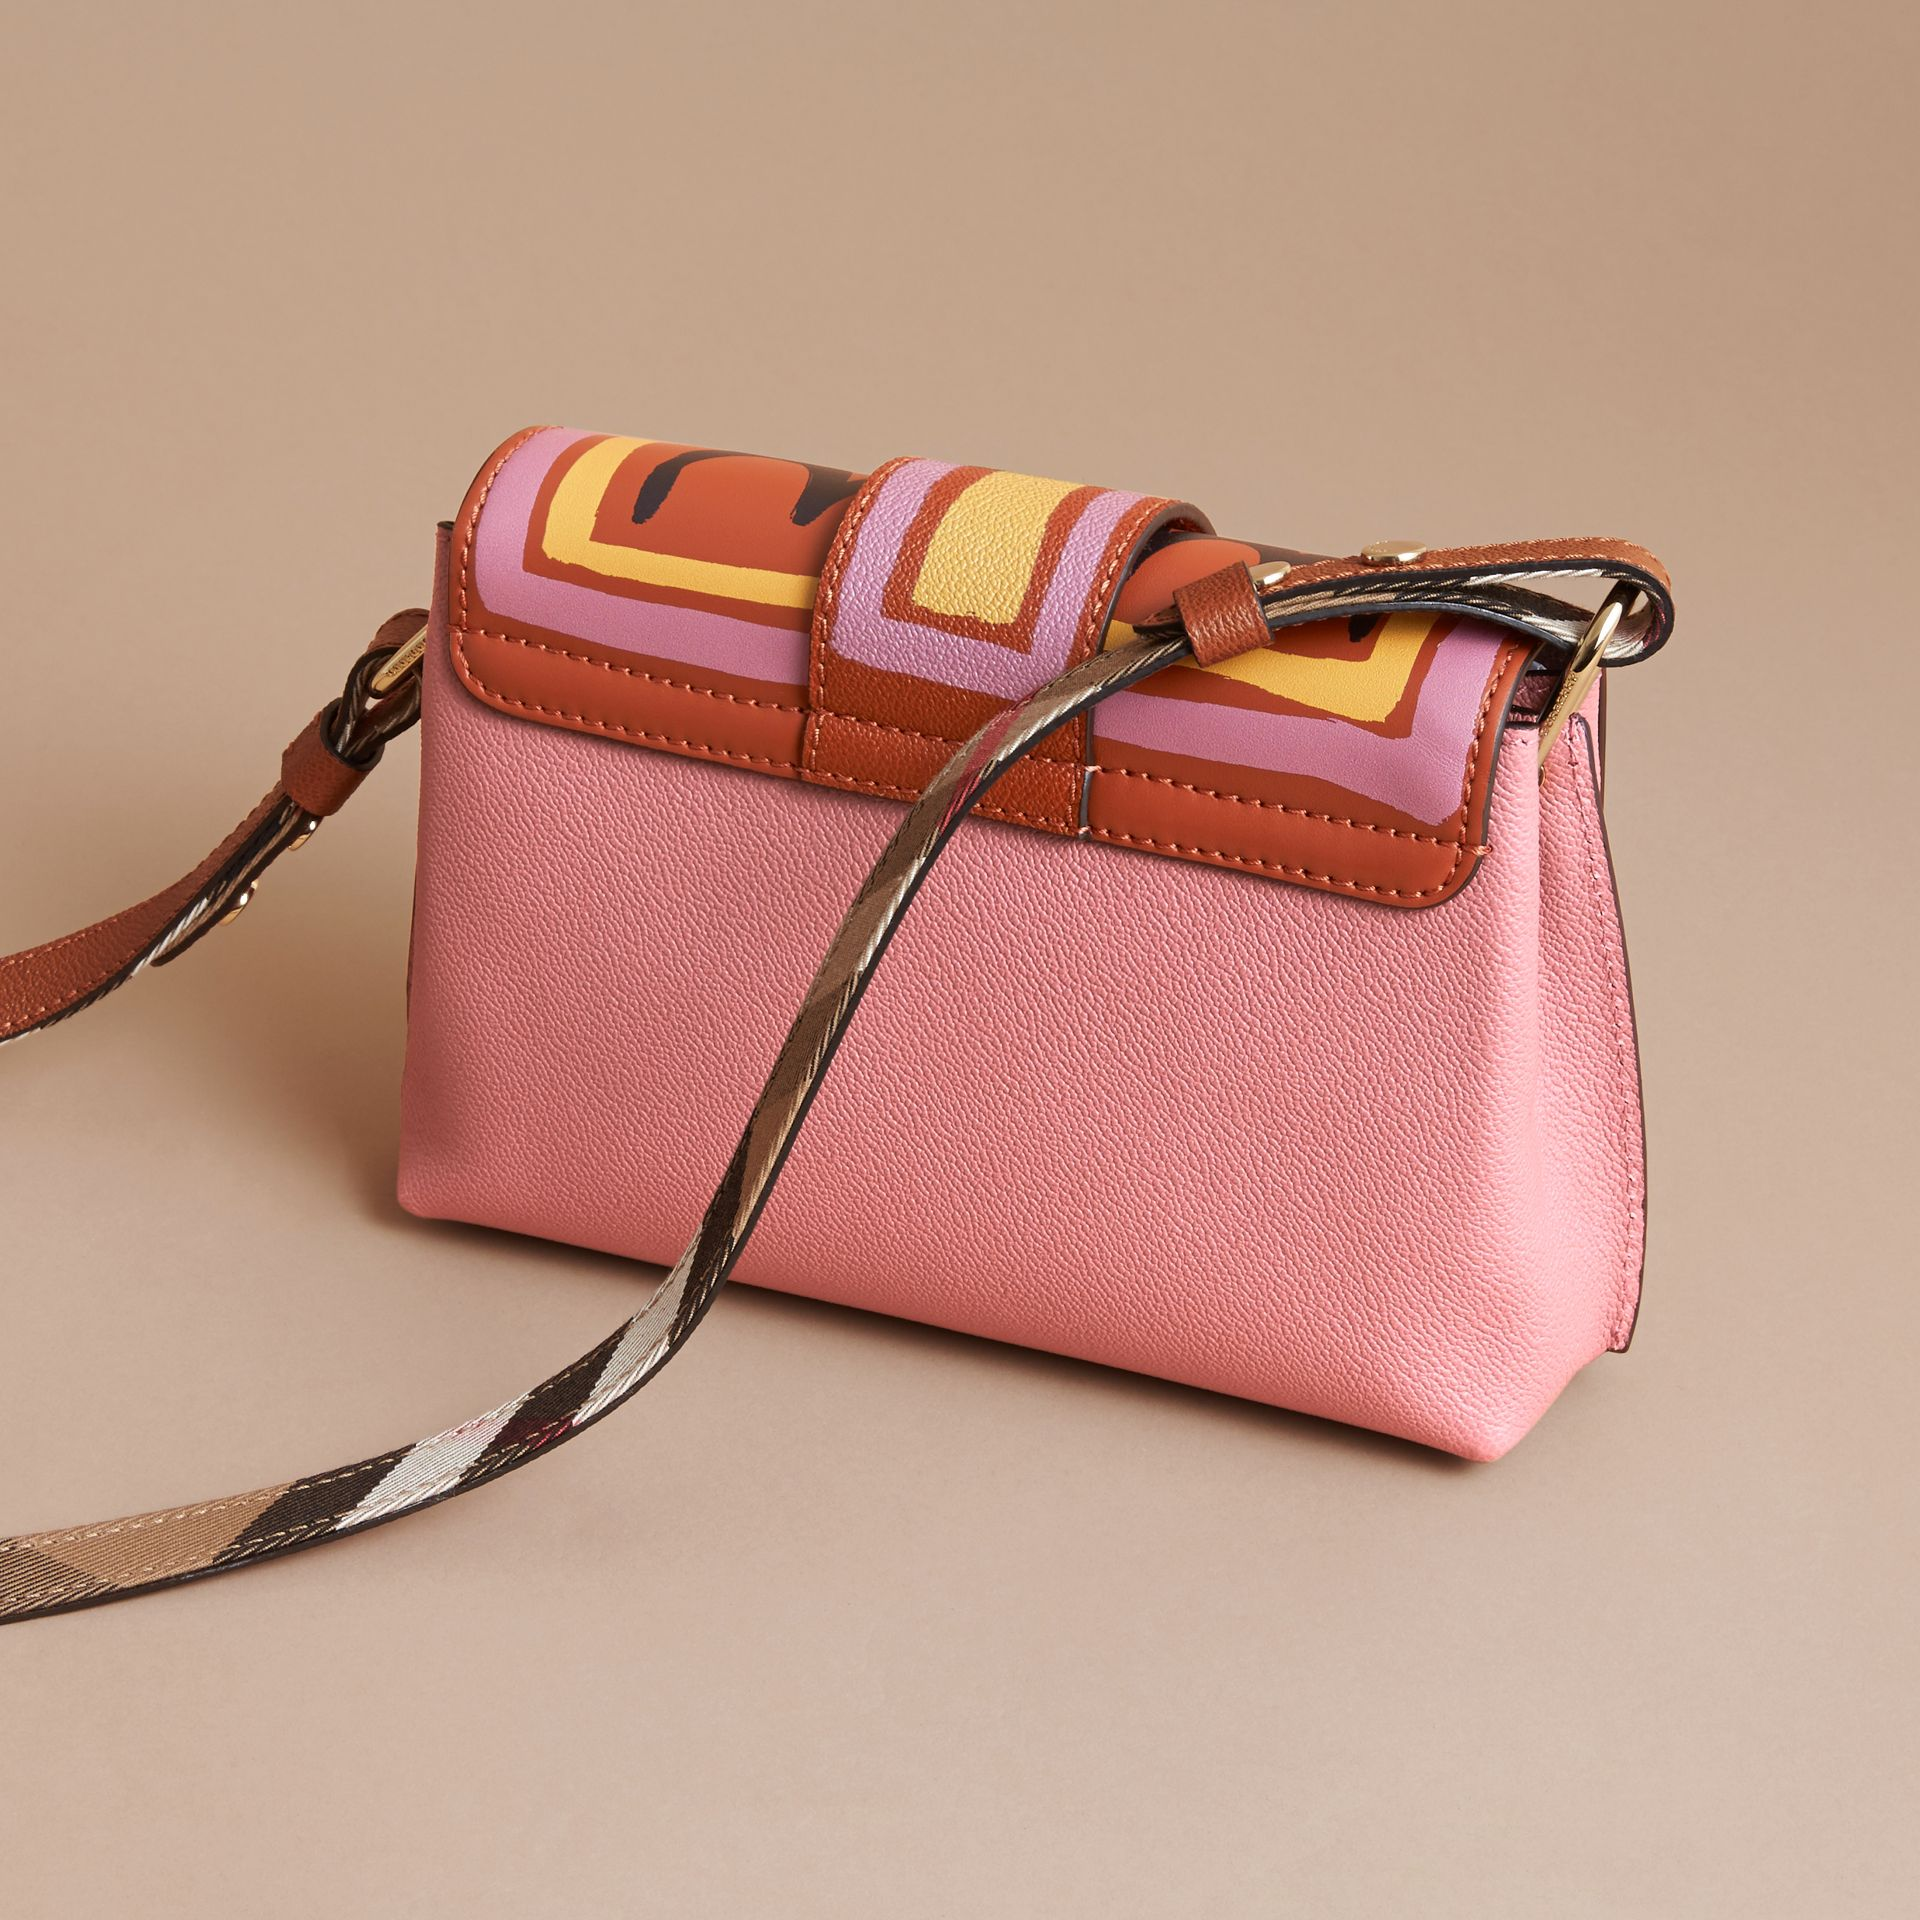 The Buckle Crossbody Bag in Trompe L'oeil Leather Dusty Pink/bright Toffee - gallery image 4